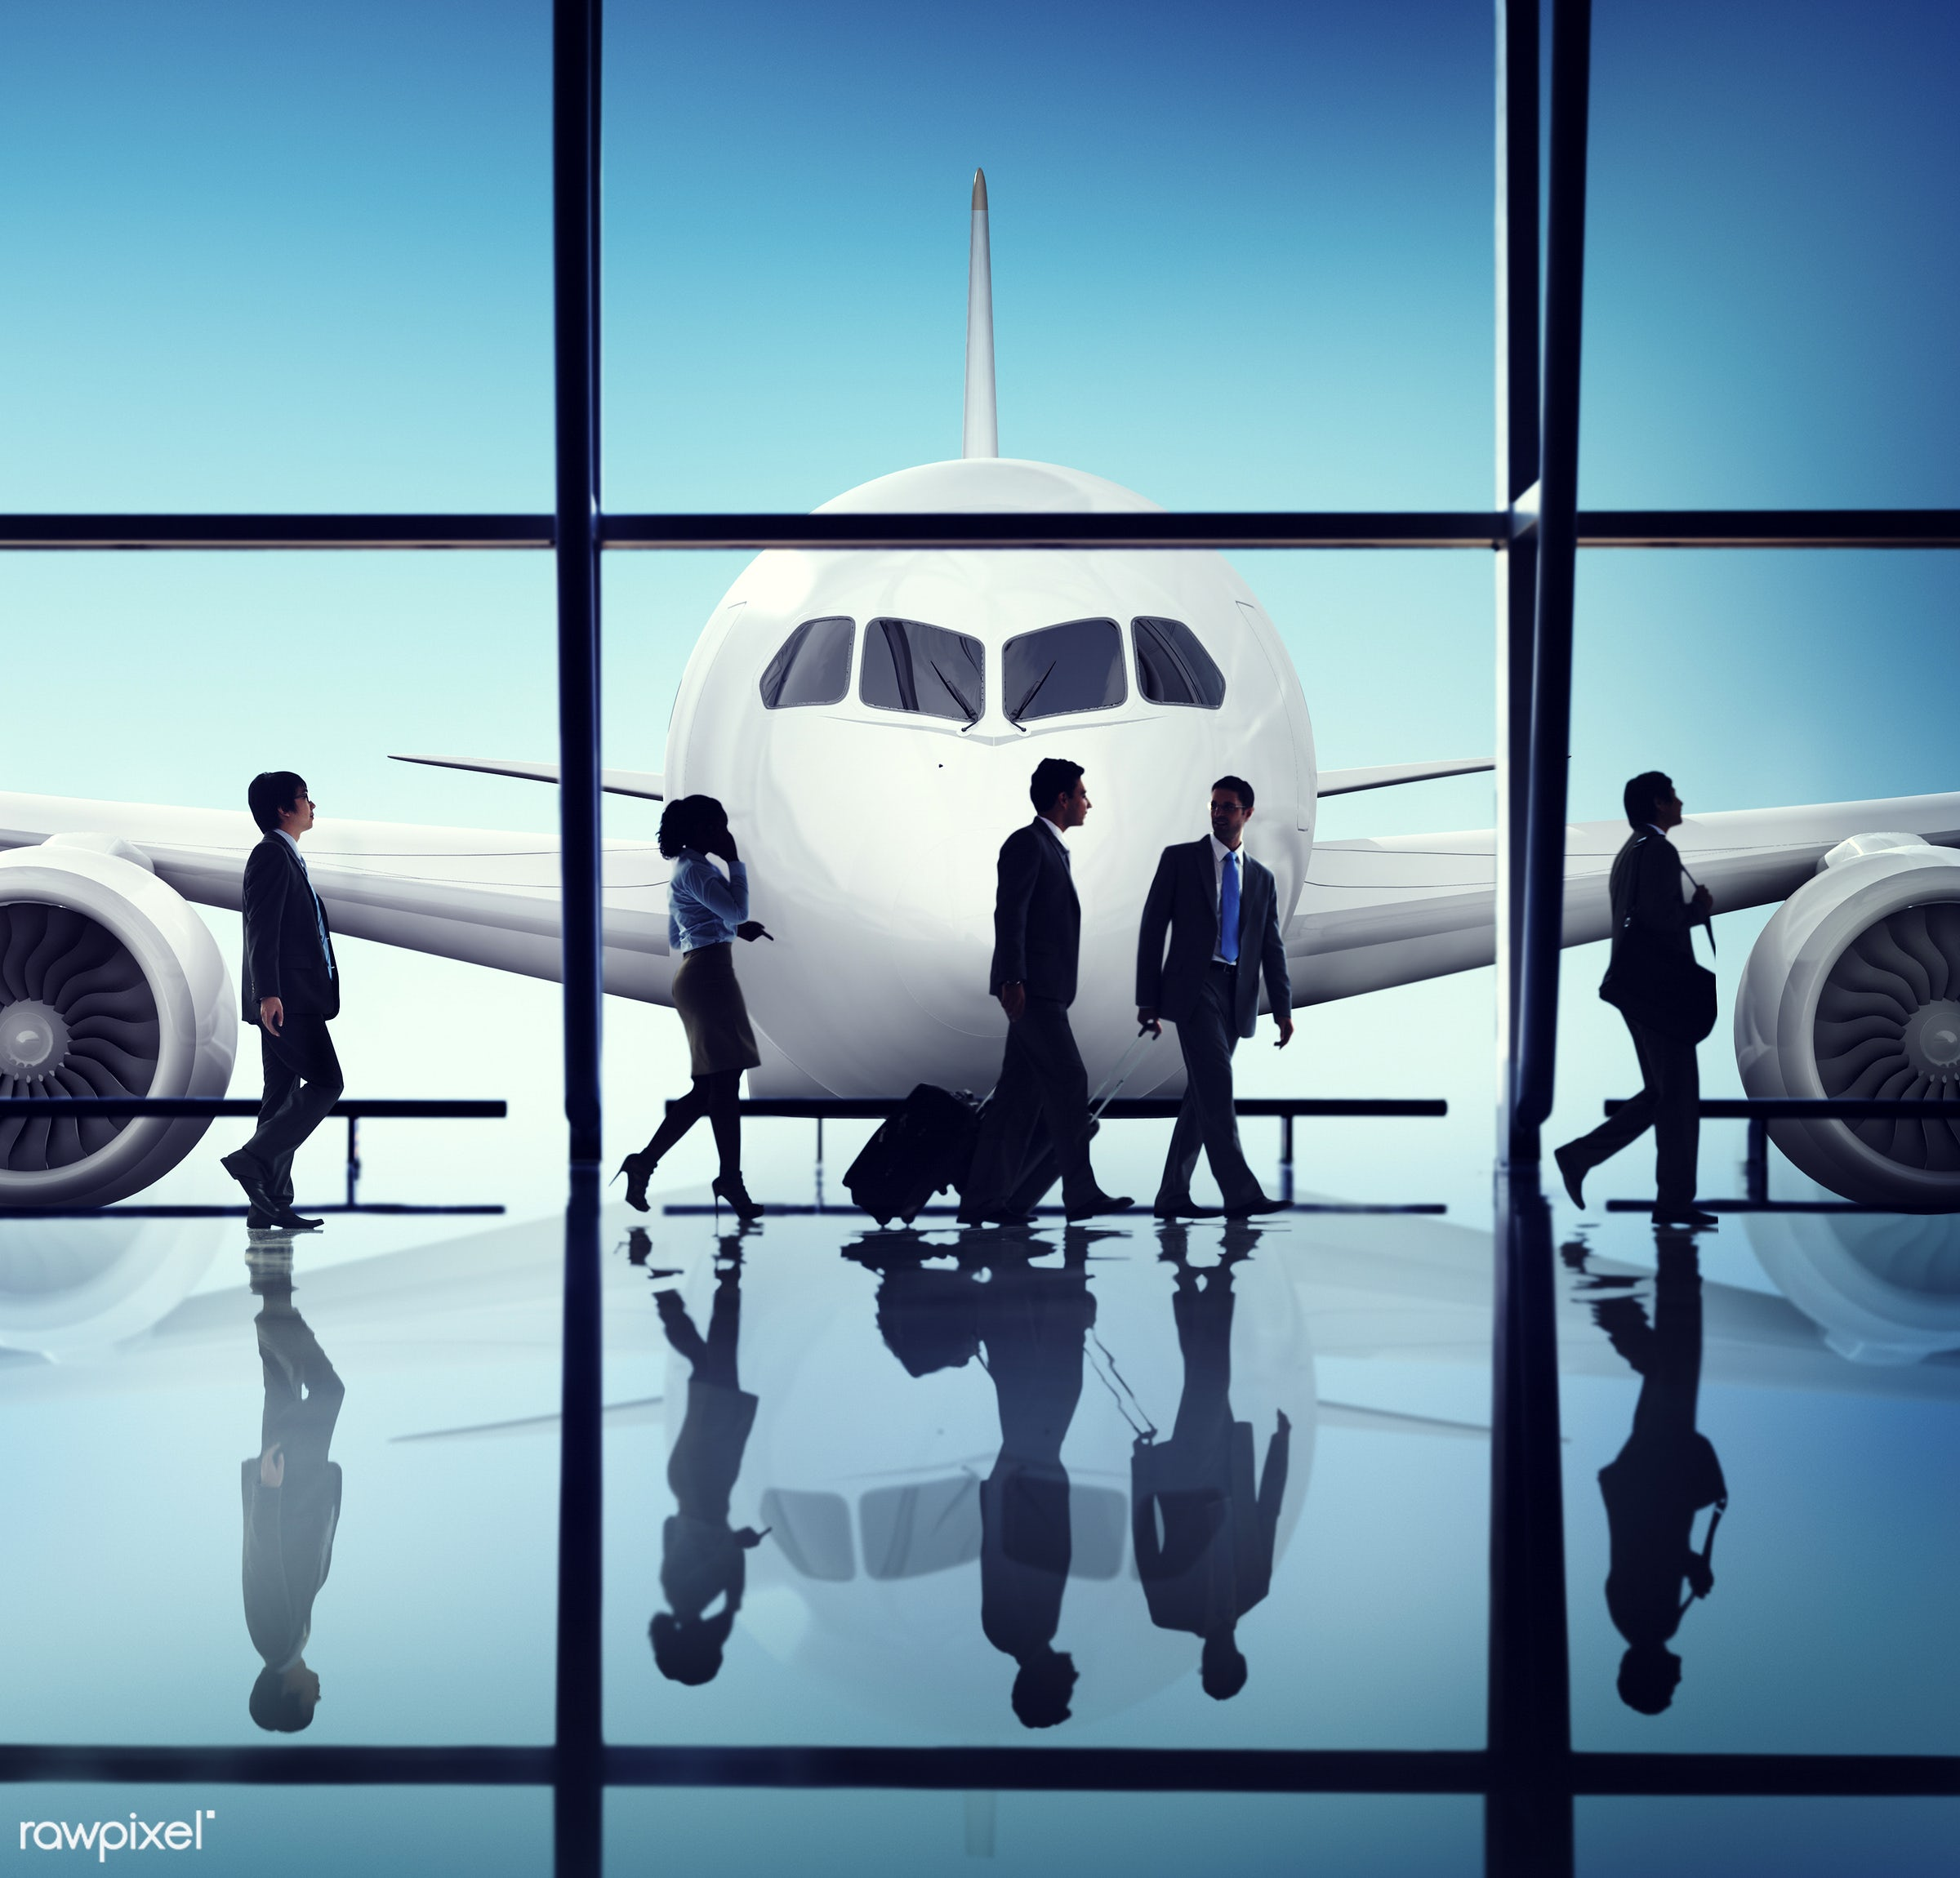 aircraft, airplane, airport, arrival, back lit, business, business people, business travel, businessmen, businesswomen,...